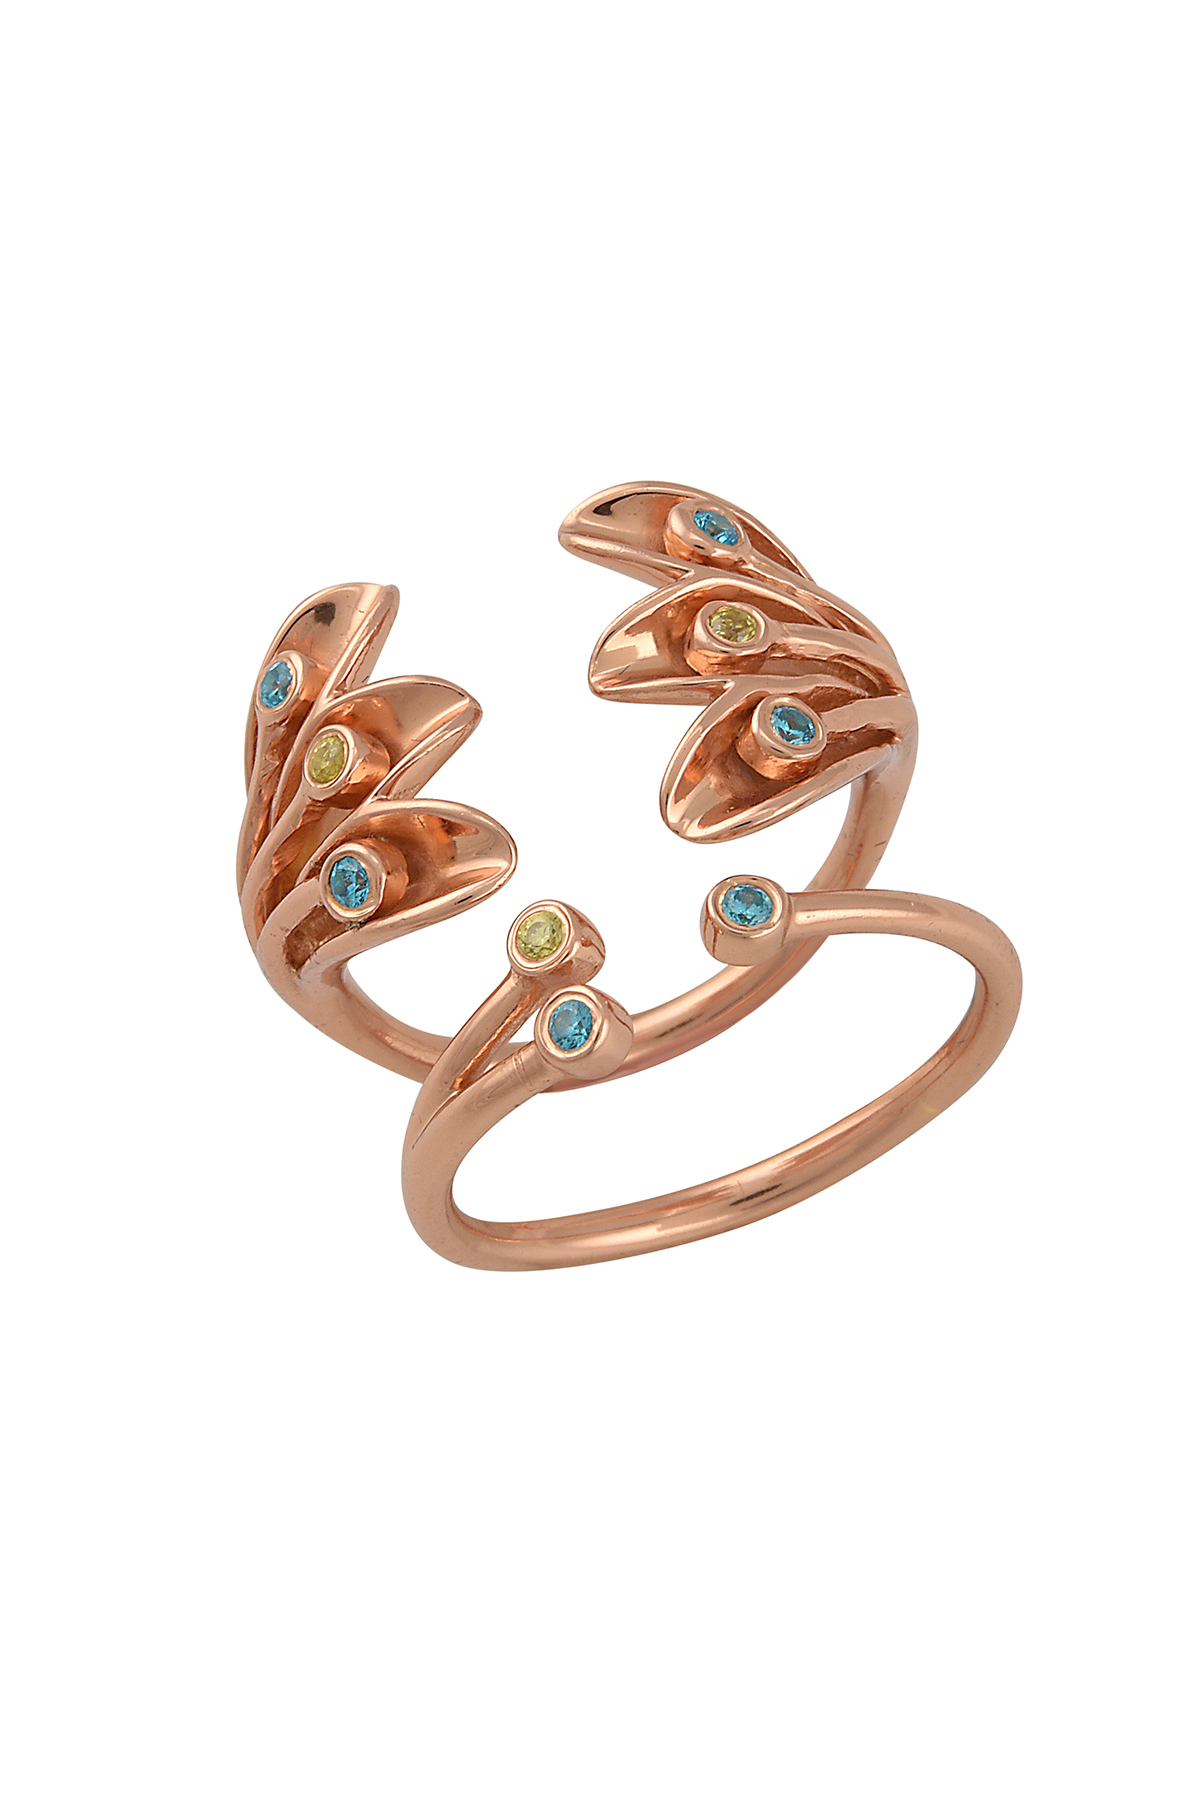 Silver Rose Gold Plated Leaf Zircon Ring Set